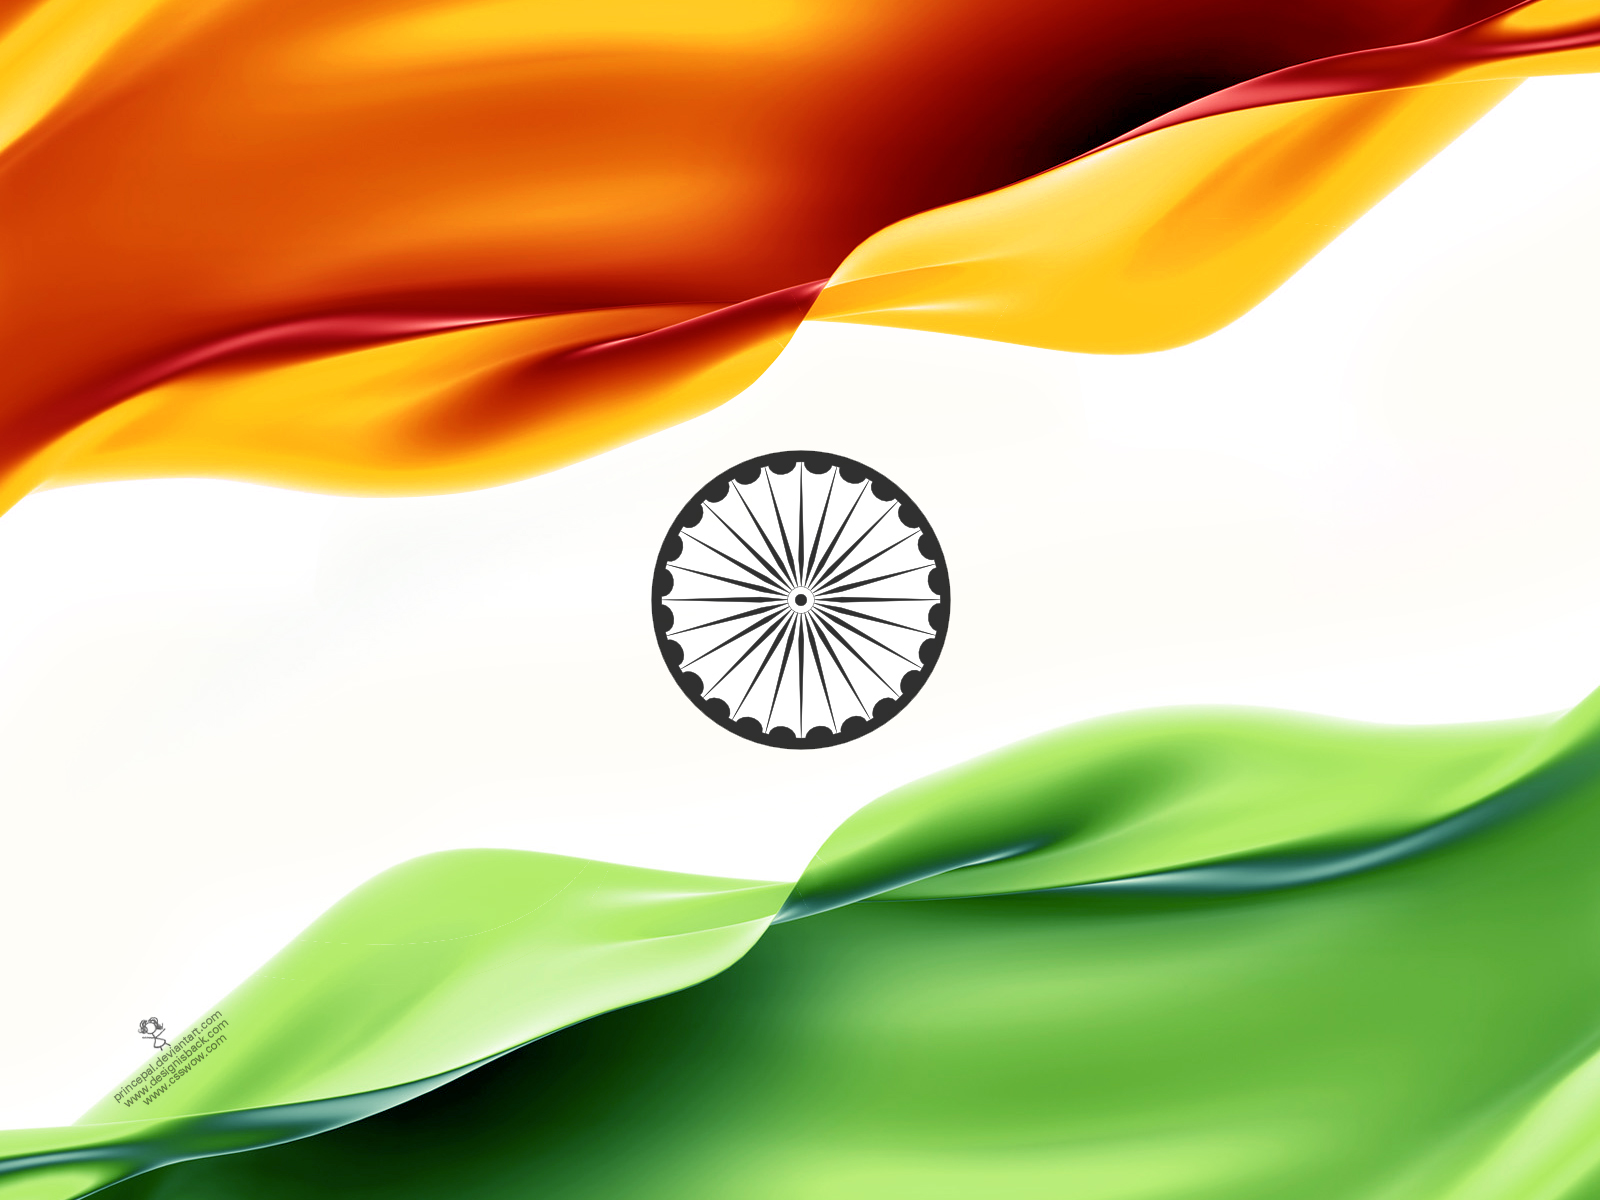 Of Indian Independence Day 2012 Wallpapers 15 August Hd For Wallpaper 1600x1200